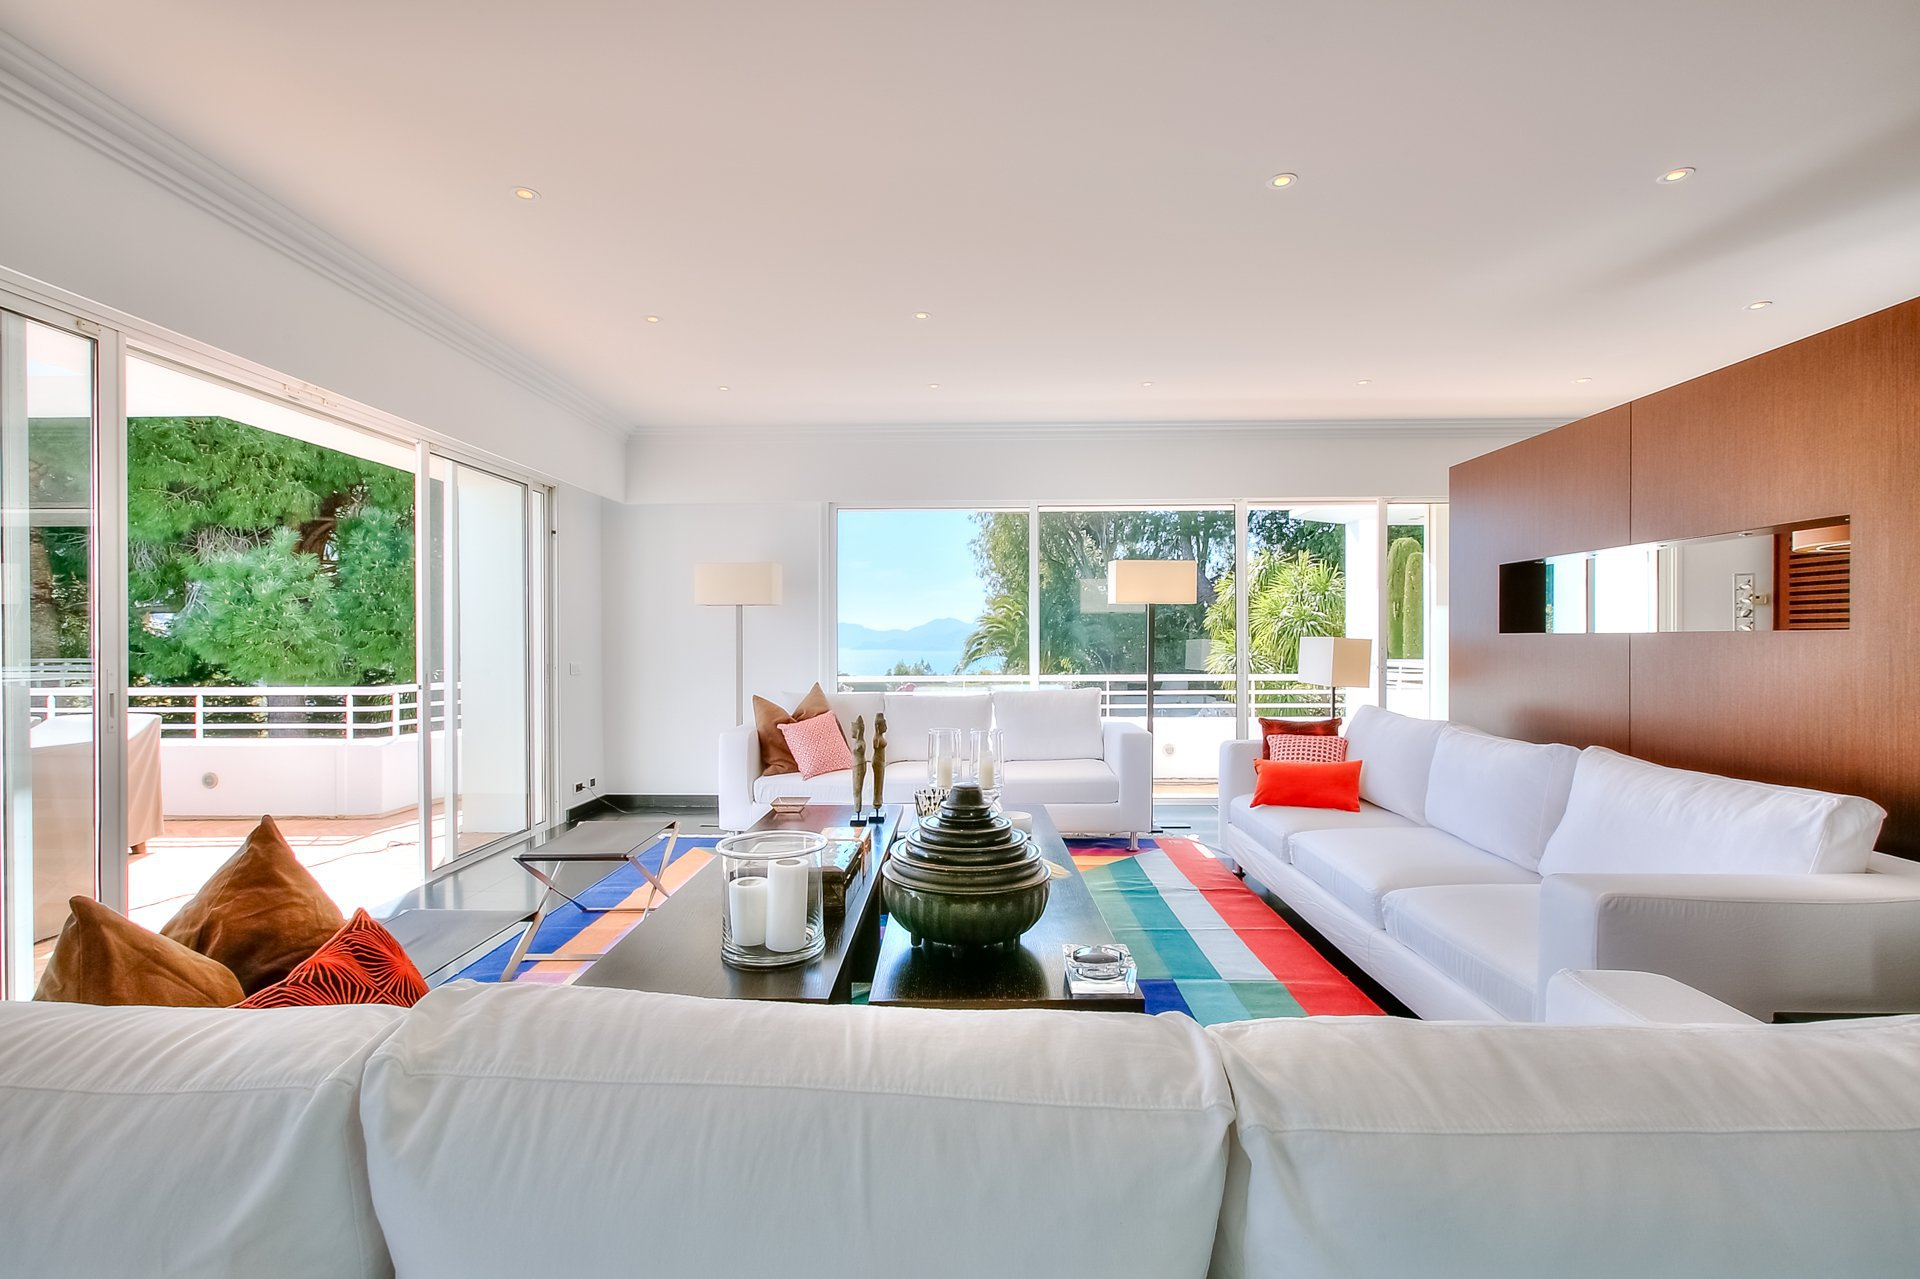 Villa Contemporaine - Cannes - Californie